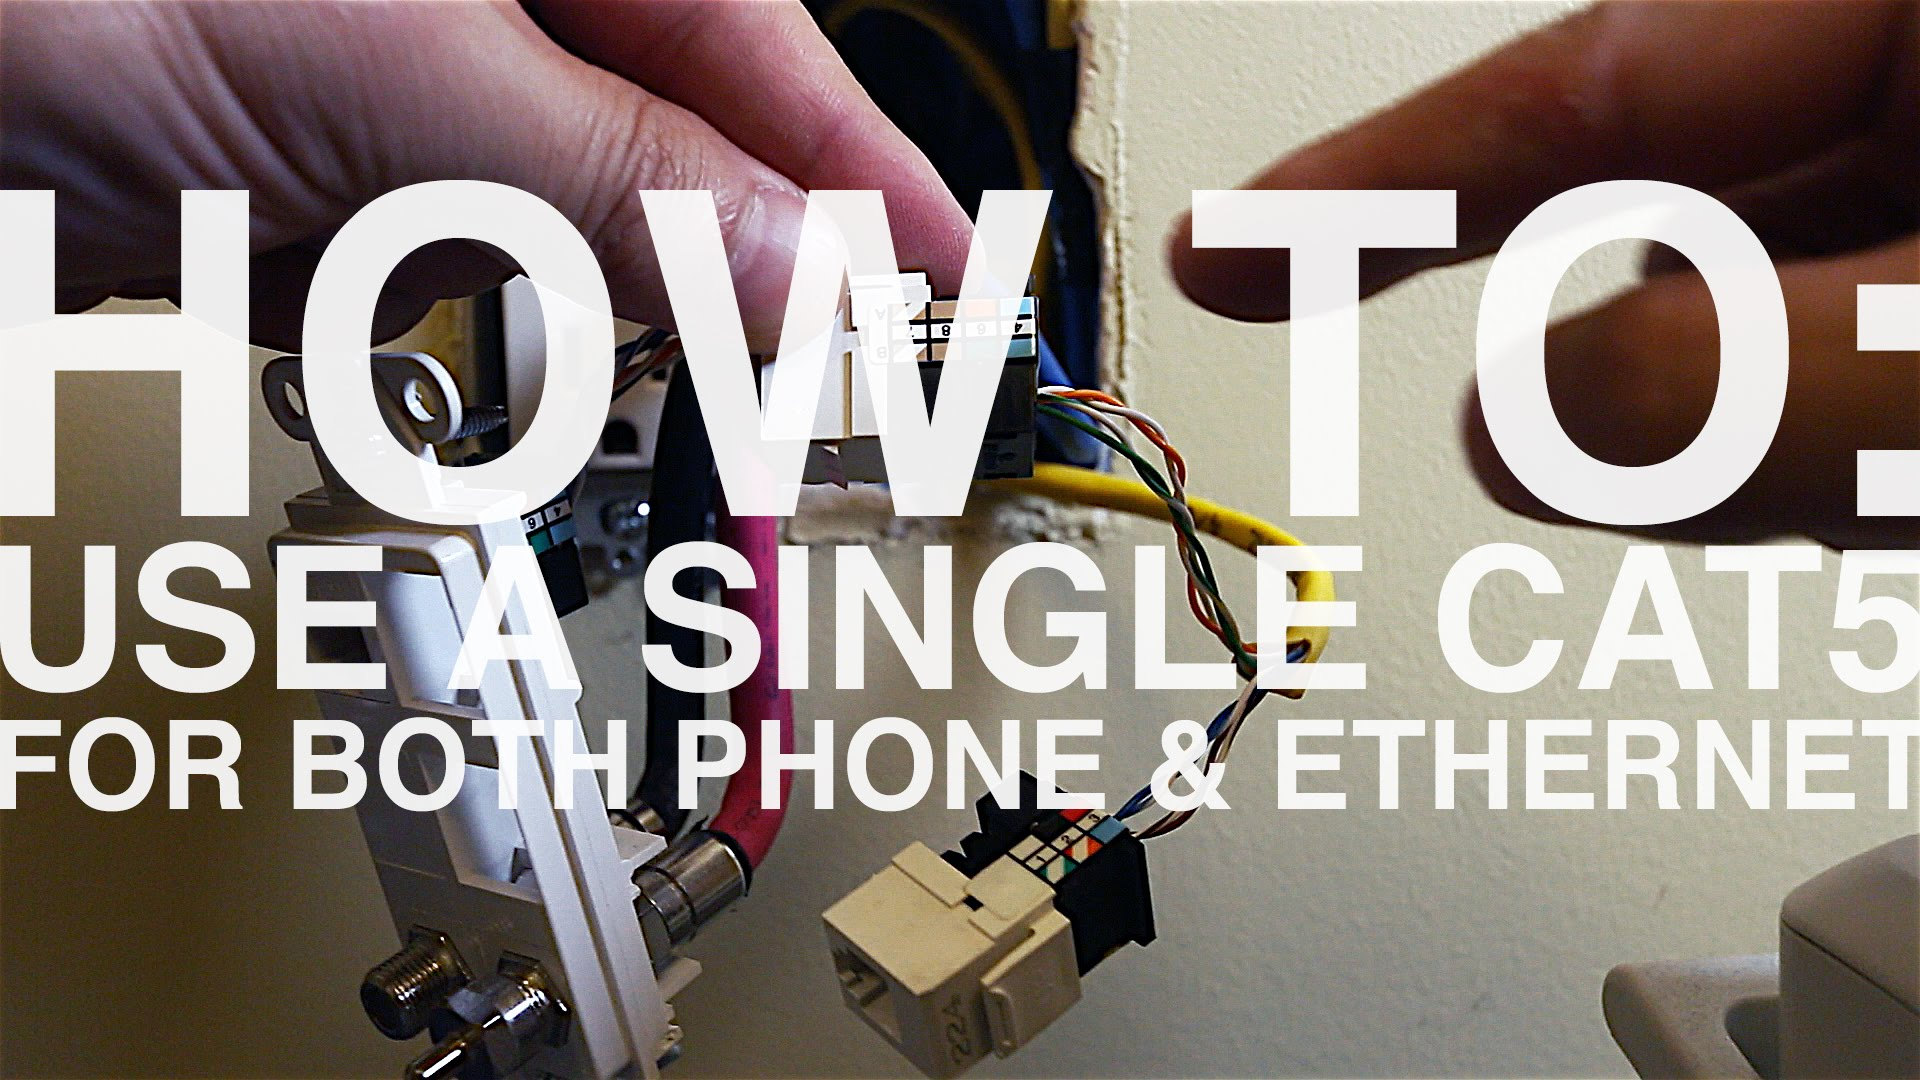 hight resolution of how to wire an ethernet and phone jack using a single cat5e cable mavromatic